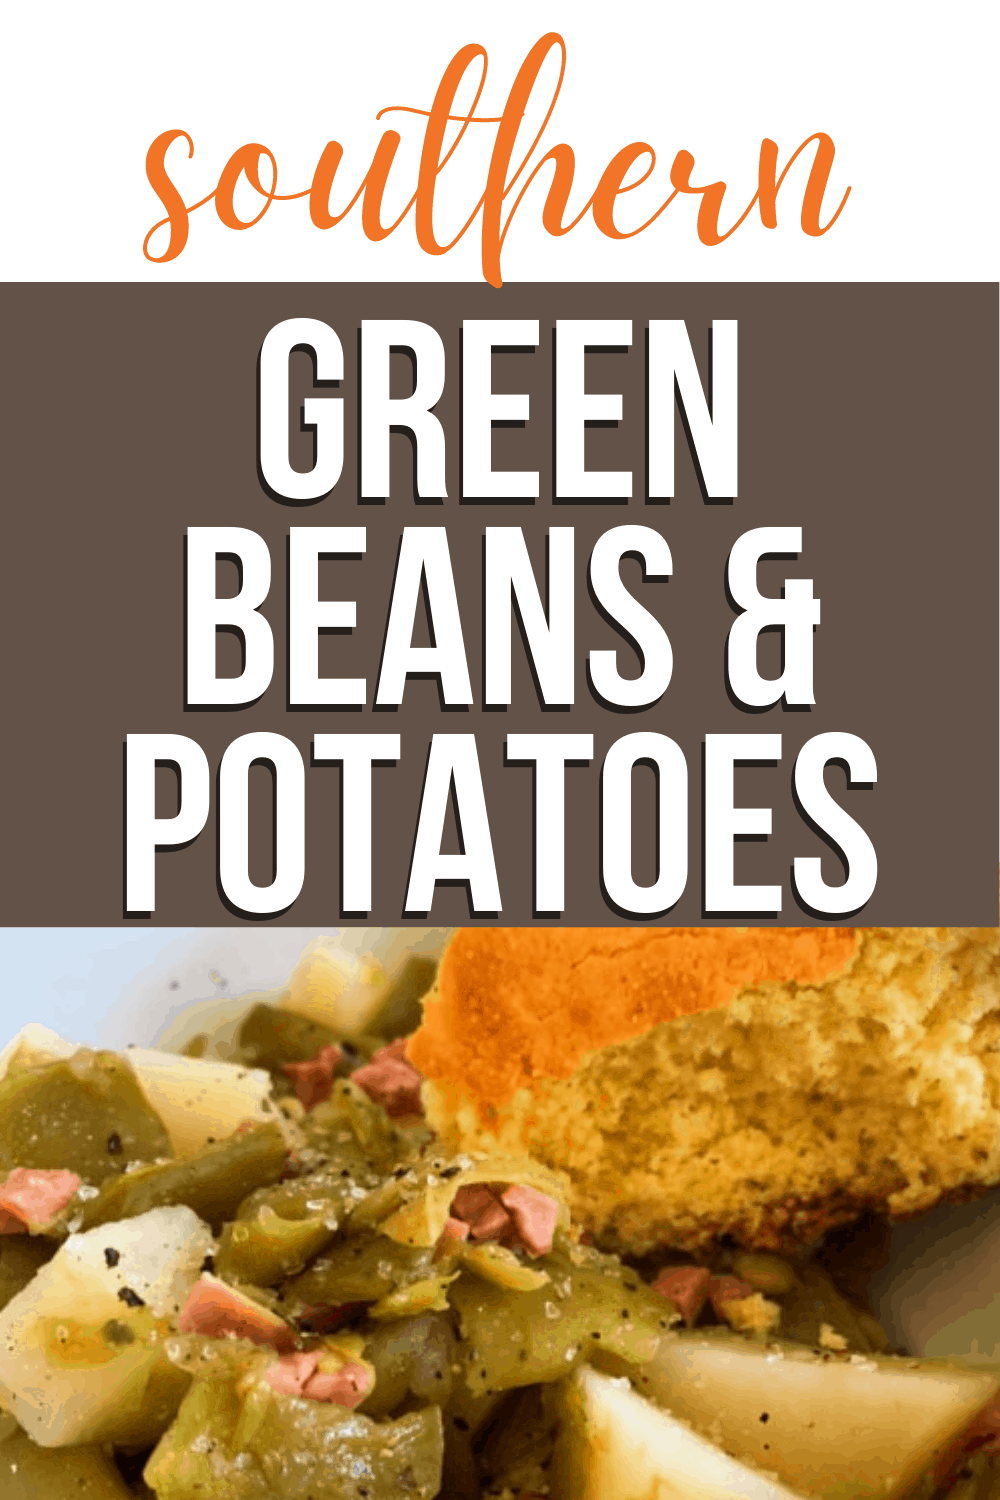 SOUTHERN GREEN BEANS AND POTATOES in a bowl with cornbread